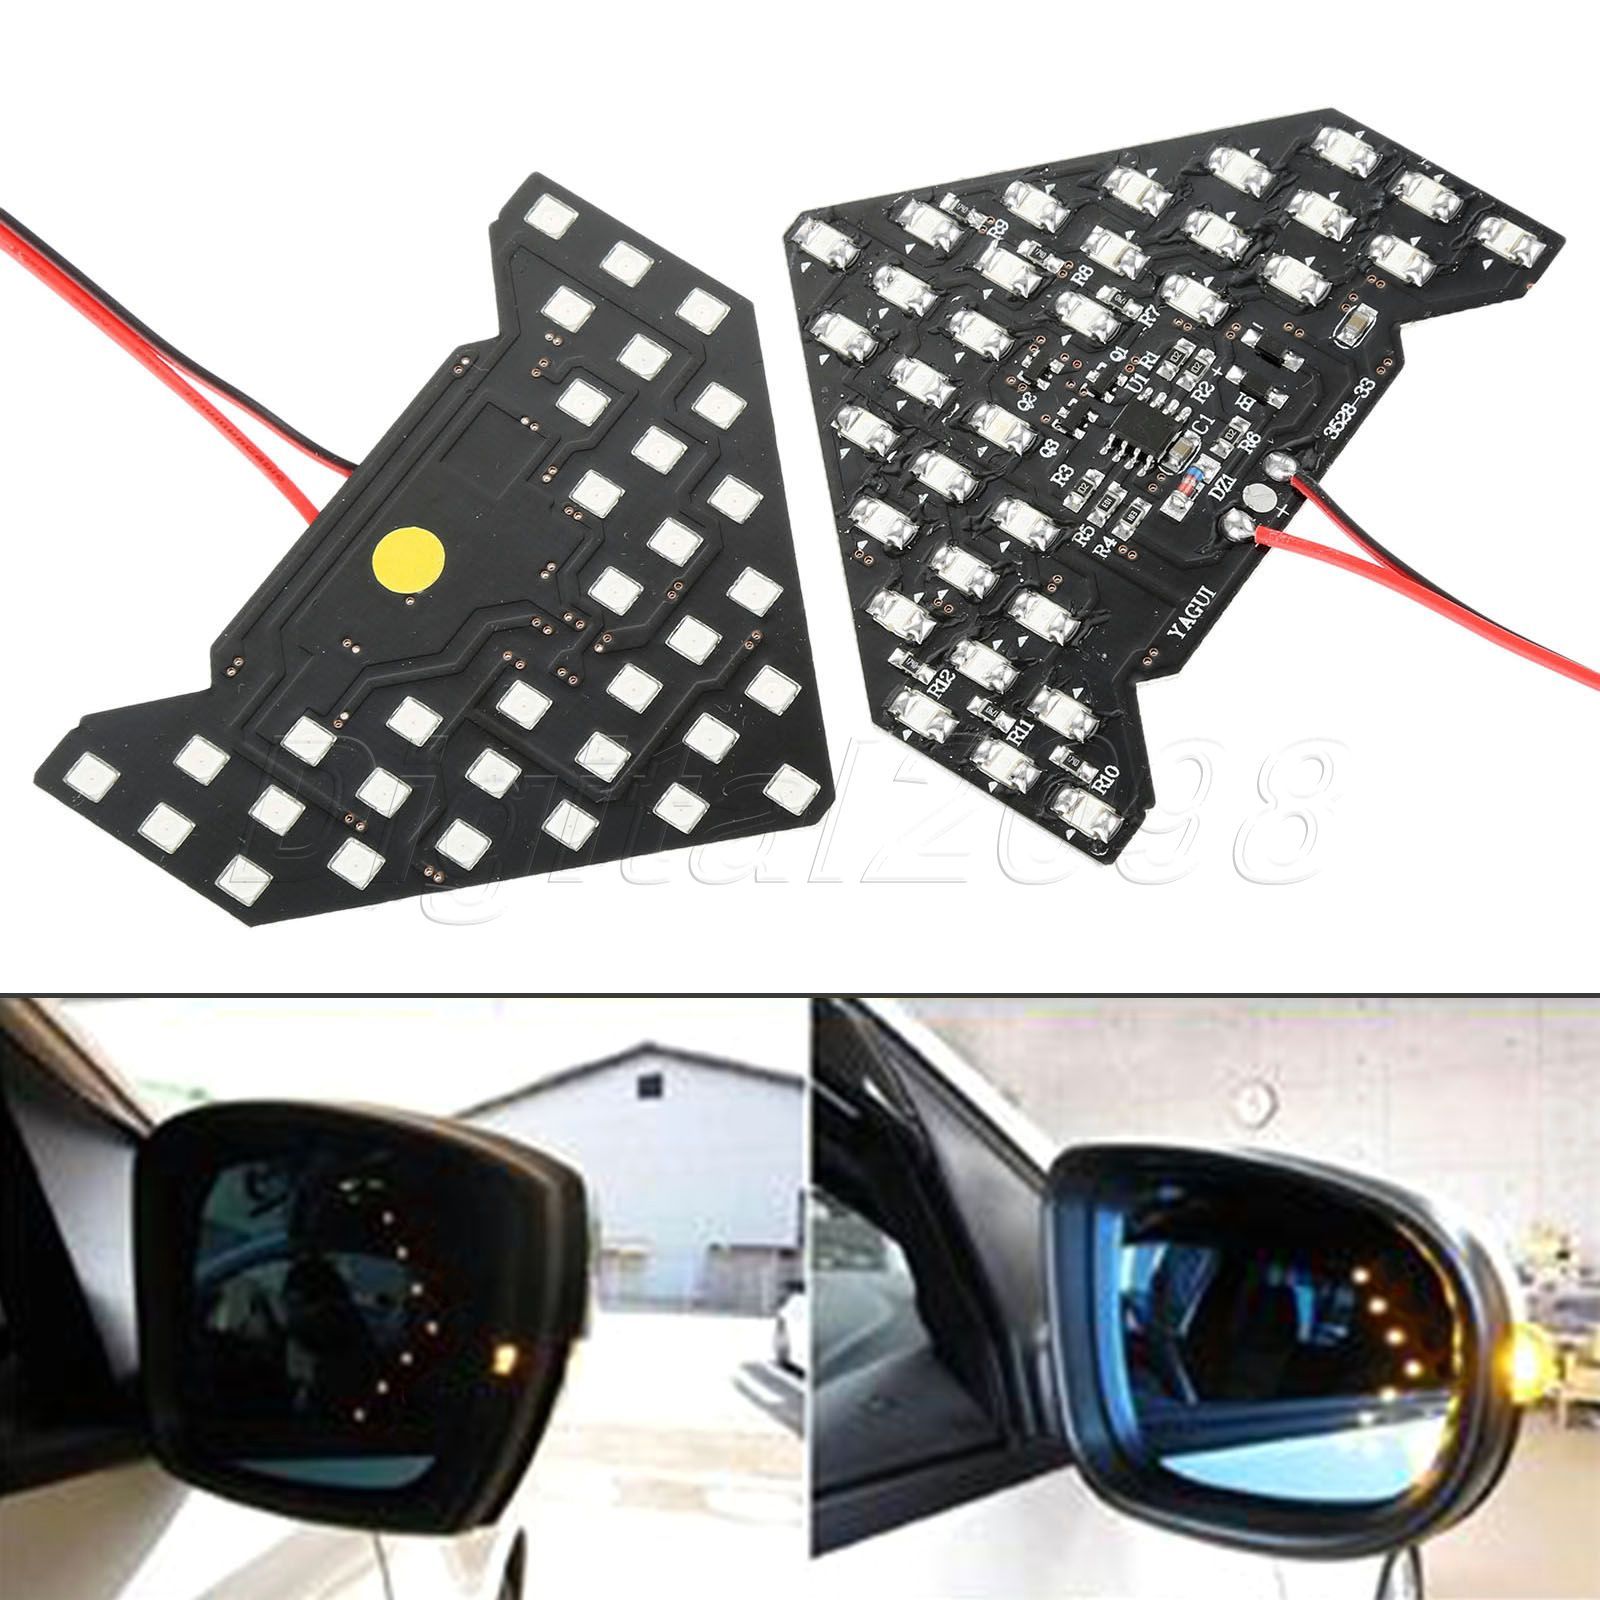 Yetaha 2PCS Led Turn Signal Lights Arrows Lamp Indicator Car Rearview Mirror Panel Yellow Blue Red Color 33 SMD LED High Quality 12v 3 pins adjustable frequency led flasher relay motorcycle turn signal indicator motorbike fix blinker indicator p34